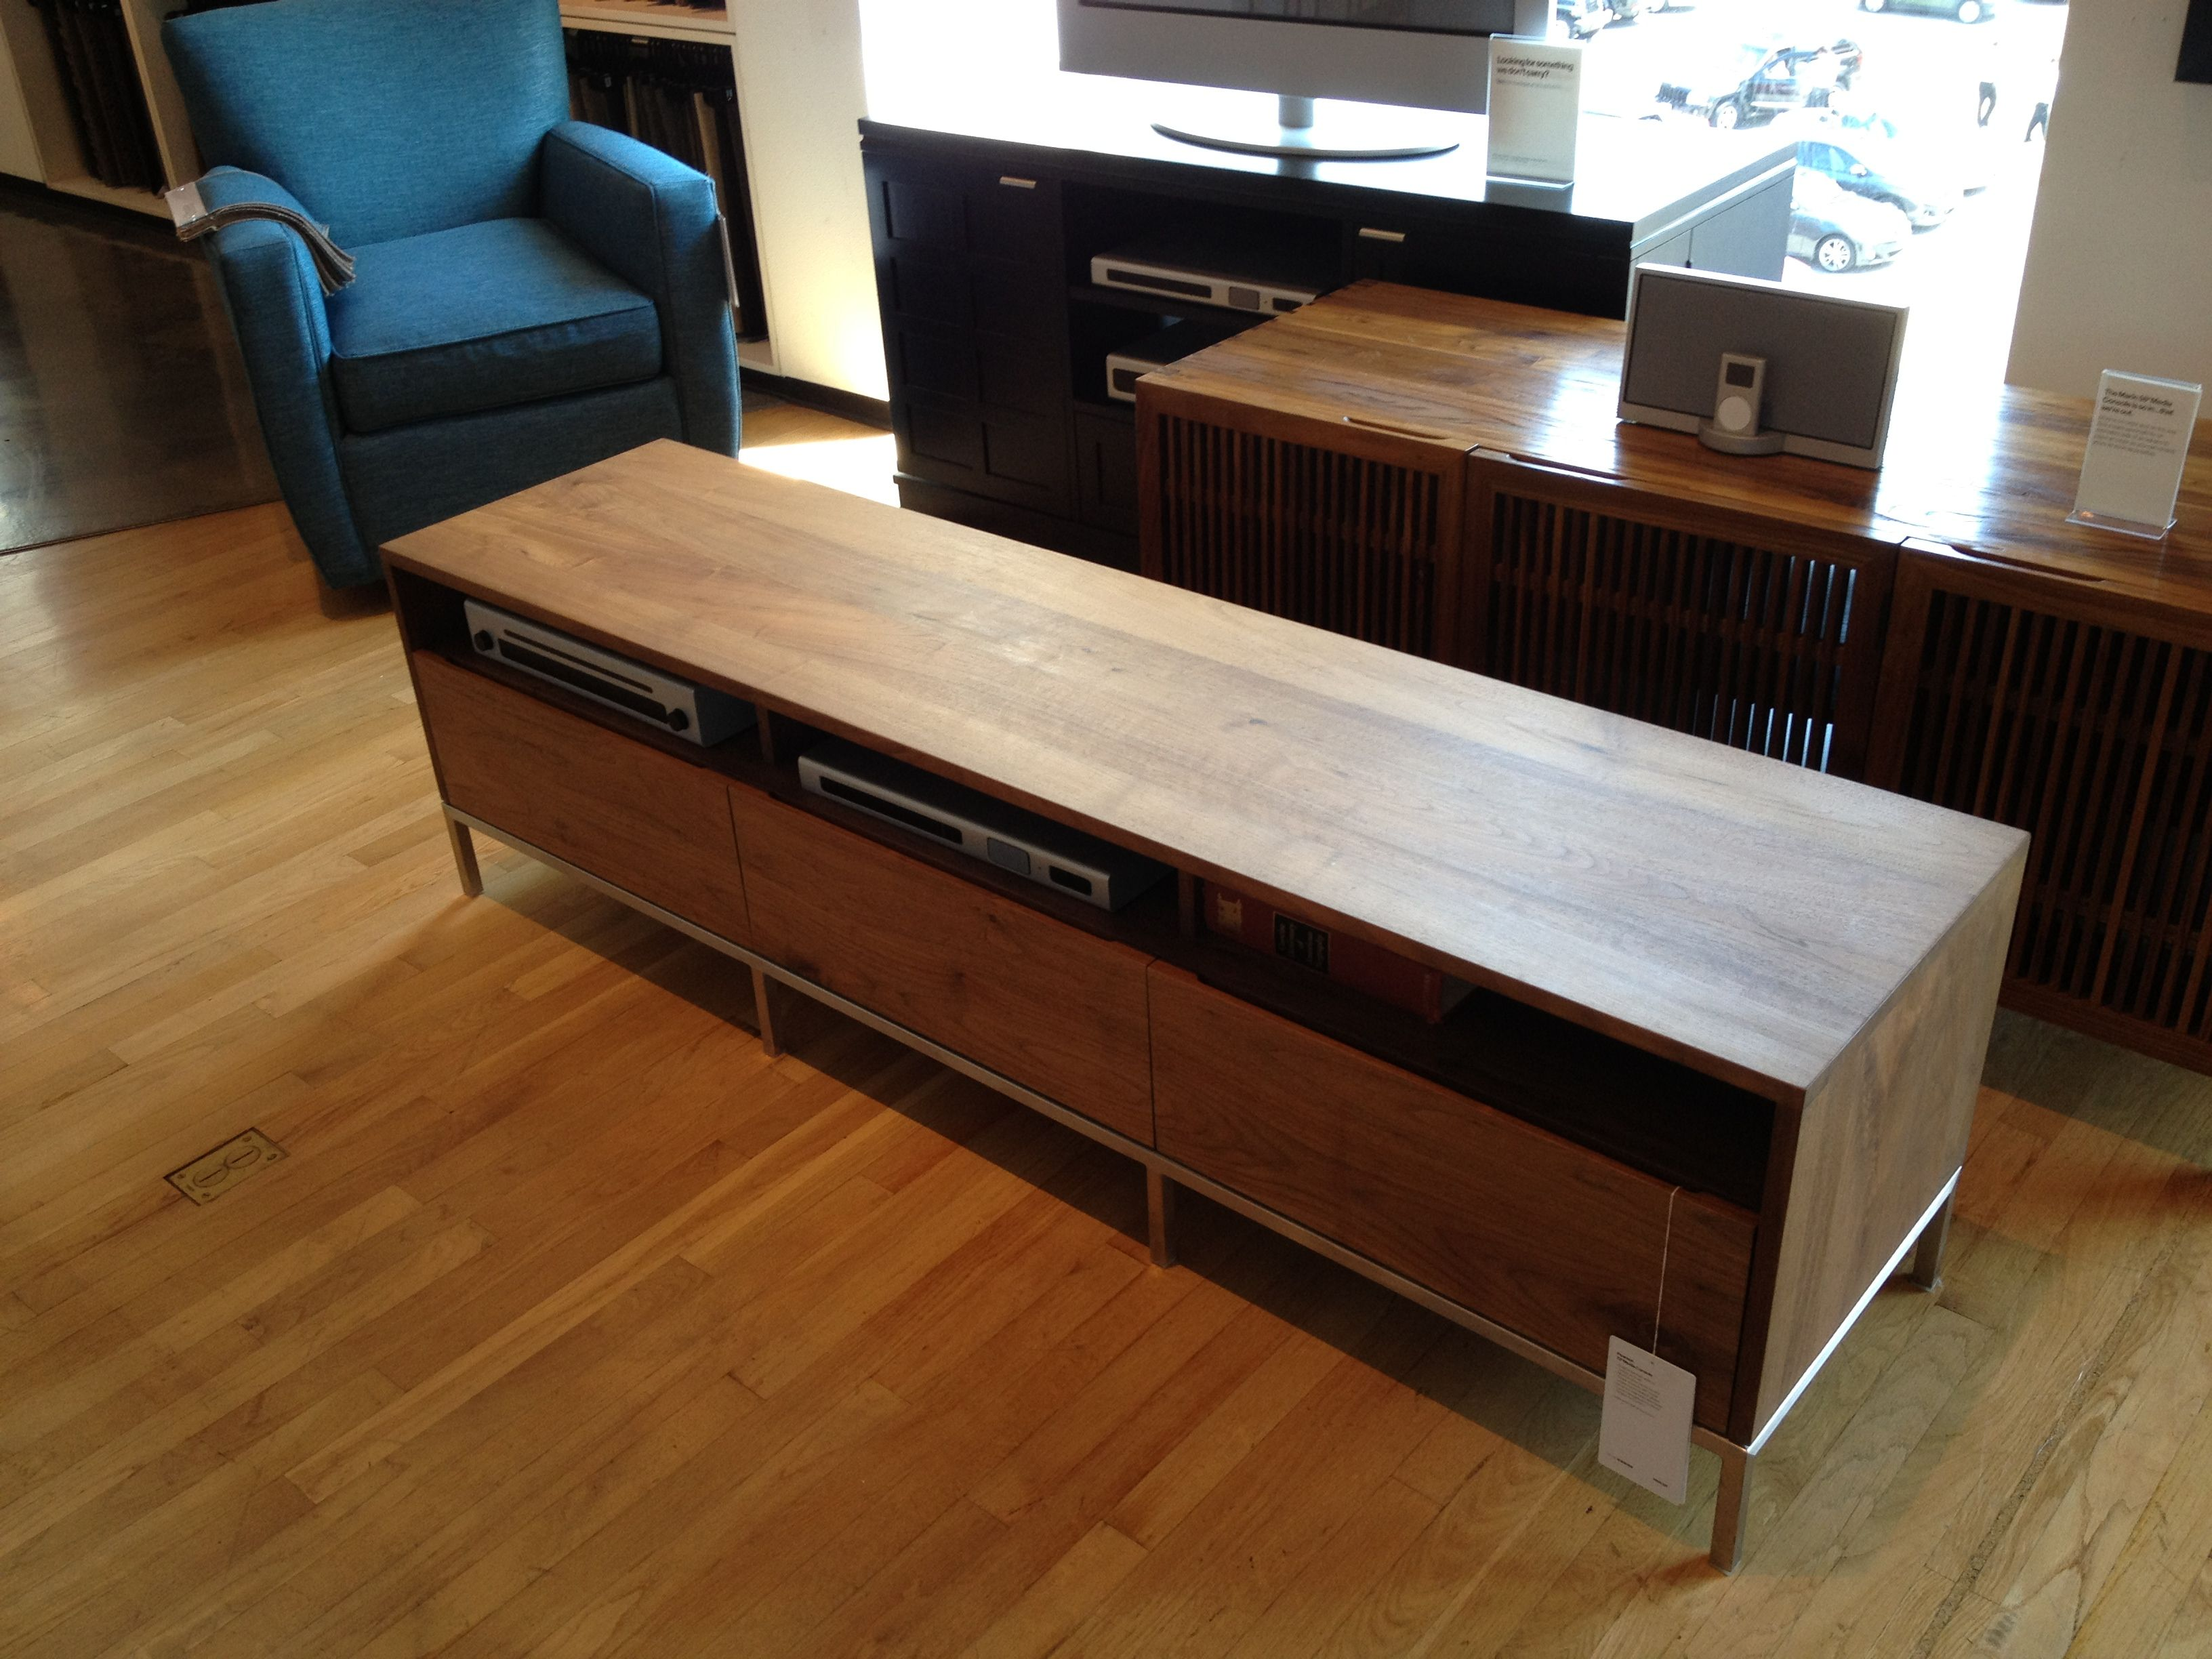 Tv Table For Our Next House Pinterest Tv Tables Tv Stand  # Table Tv Plasma En Bois Angle